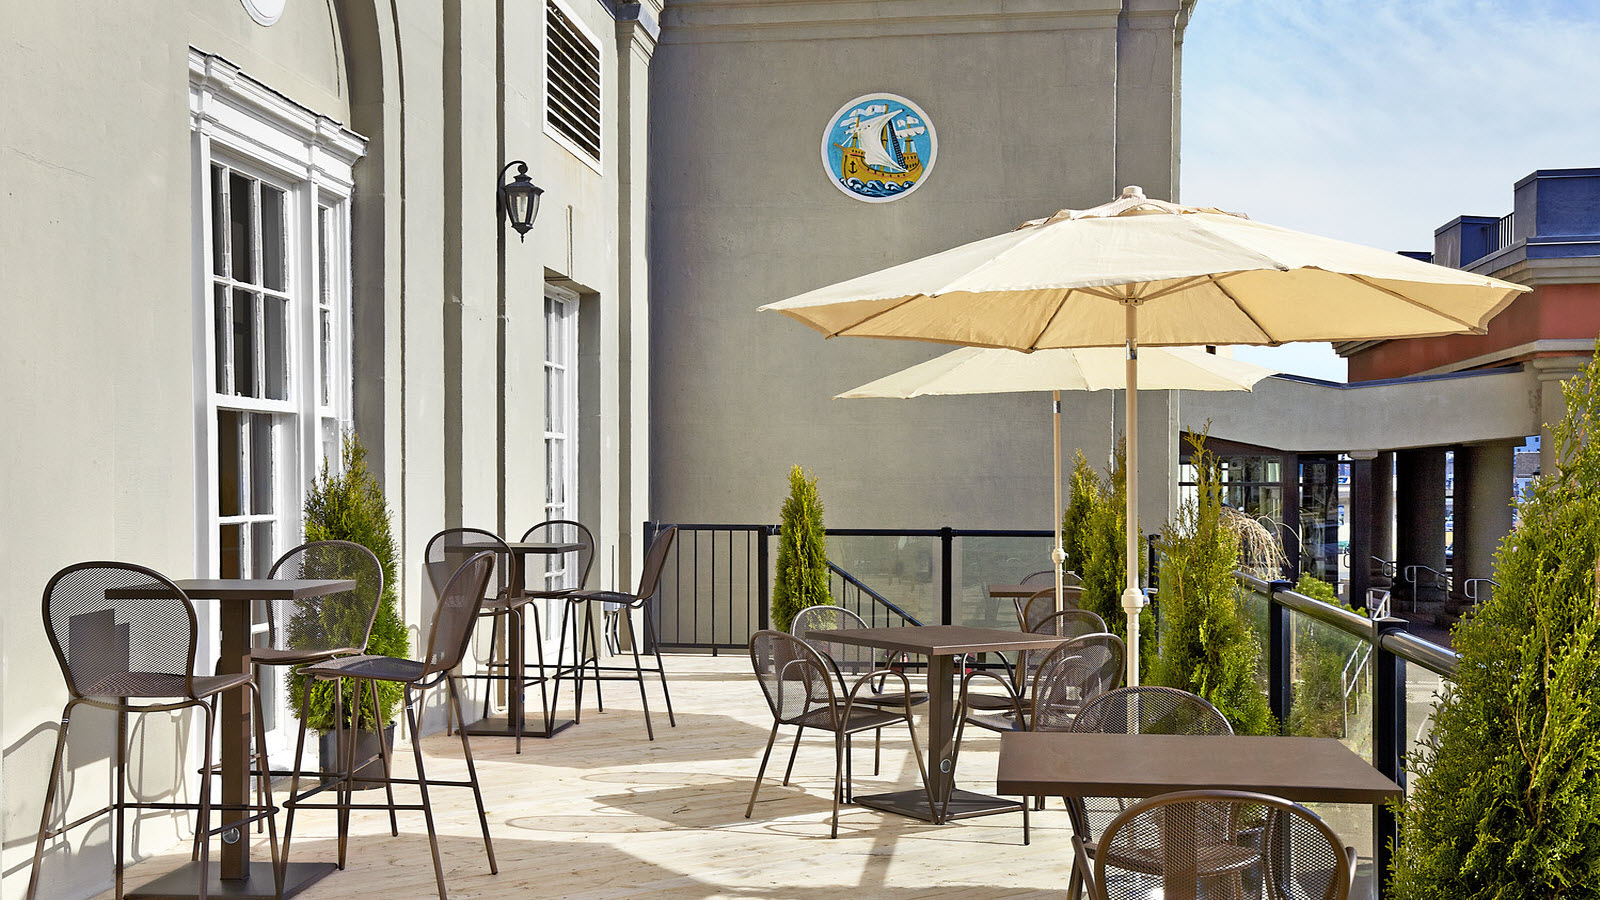 Event Venues Halifax - Outdoor Dining